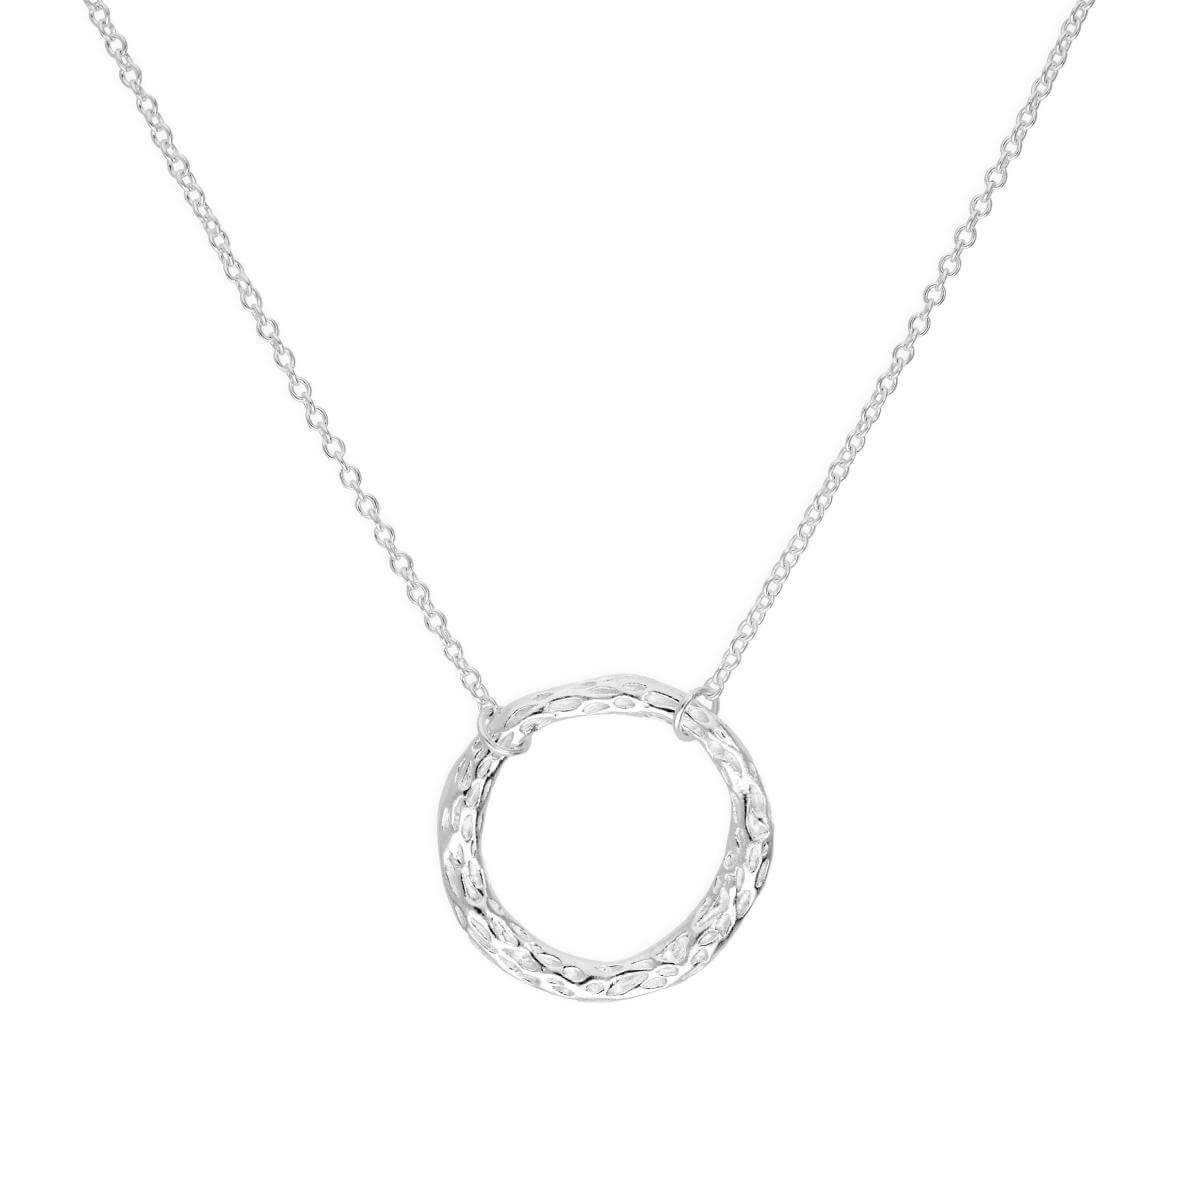 Sterling Silver Hammered Karma Ring Necklace on 16 Inch Chain